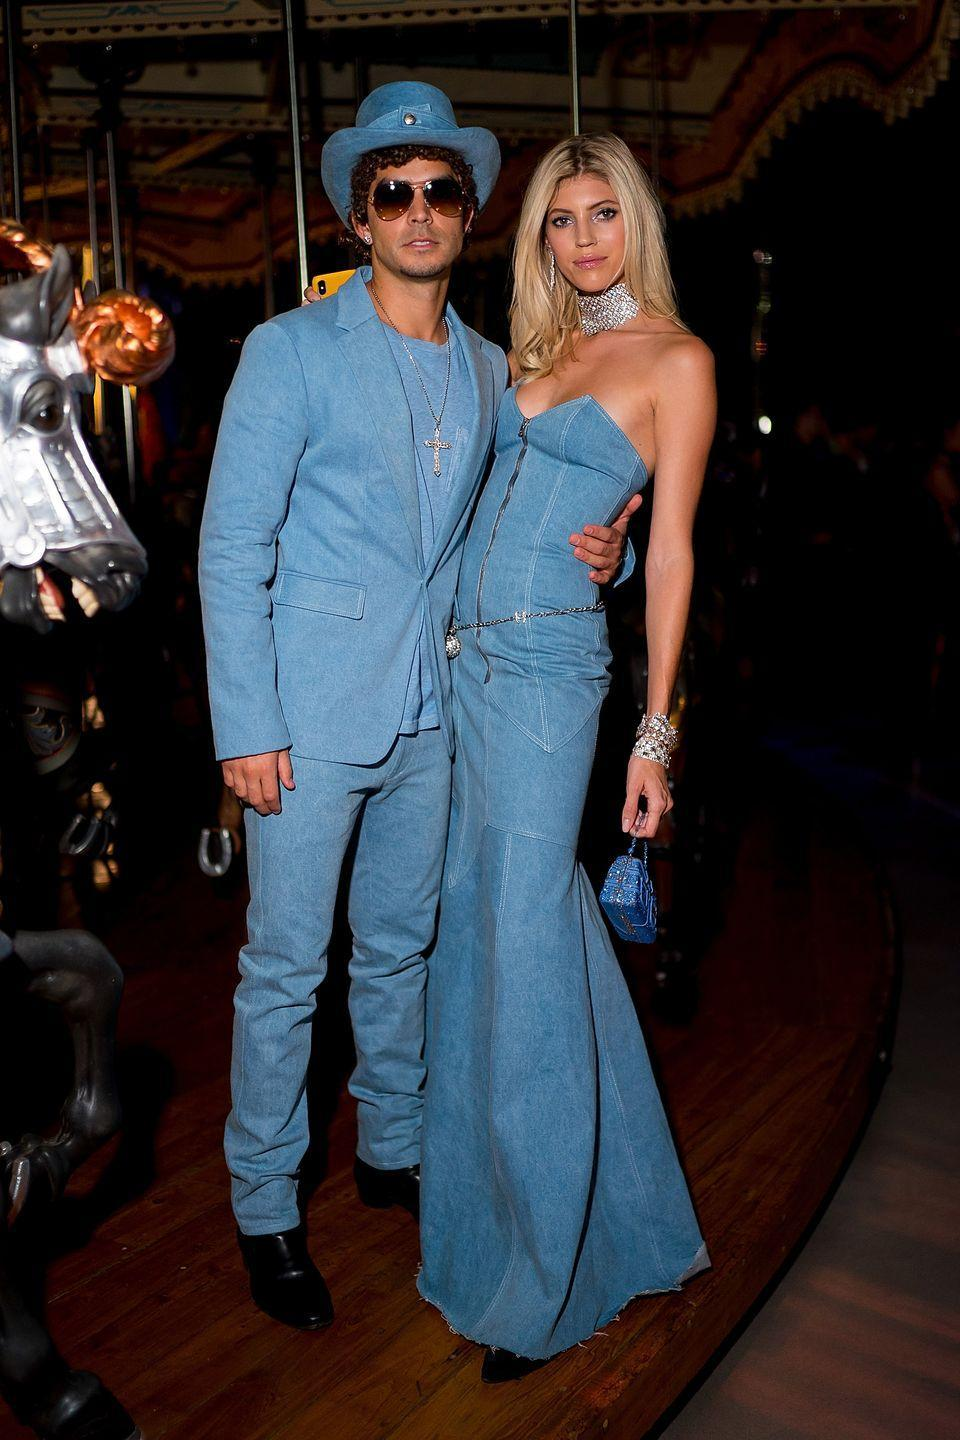 <p>The Victoria's Secret model and Jonathan Barbara took us back to the year 2001 with the iconic ensemble Britney and JT wore to the American Music Awards. </p>